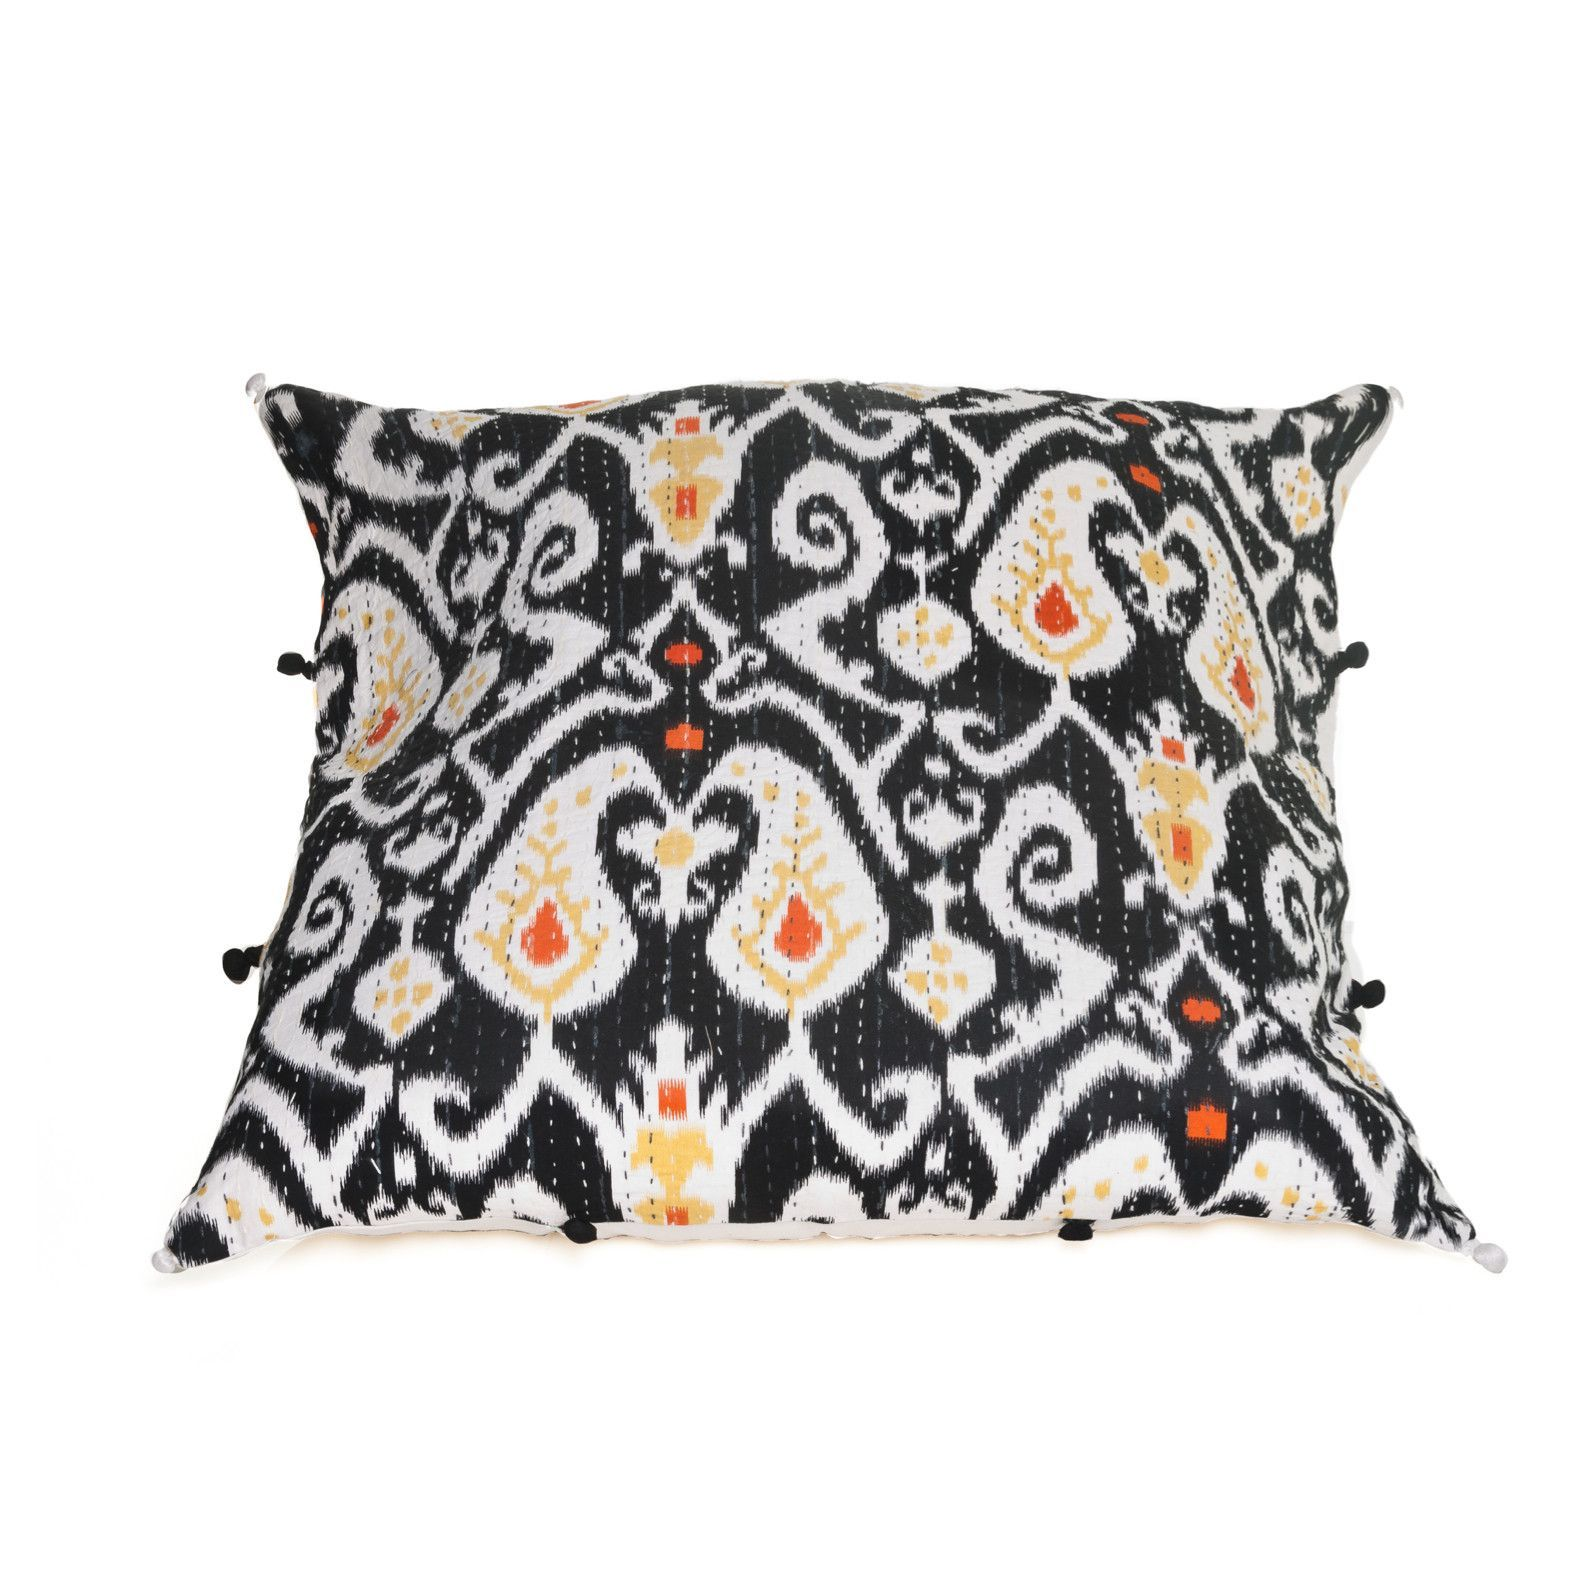 Multicolored ikat pillow cover pillows and products